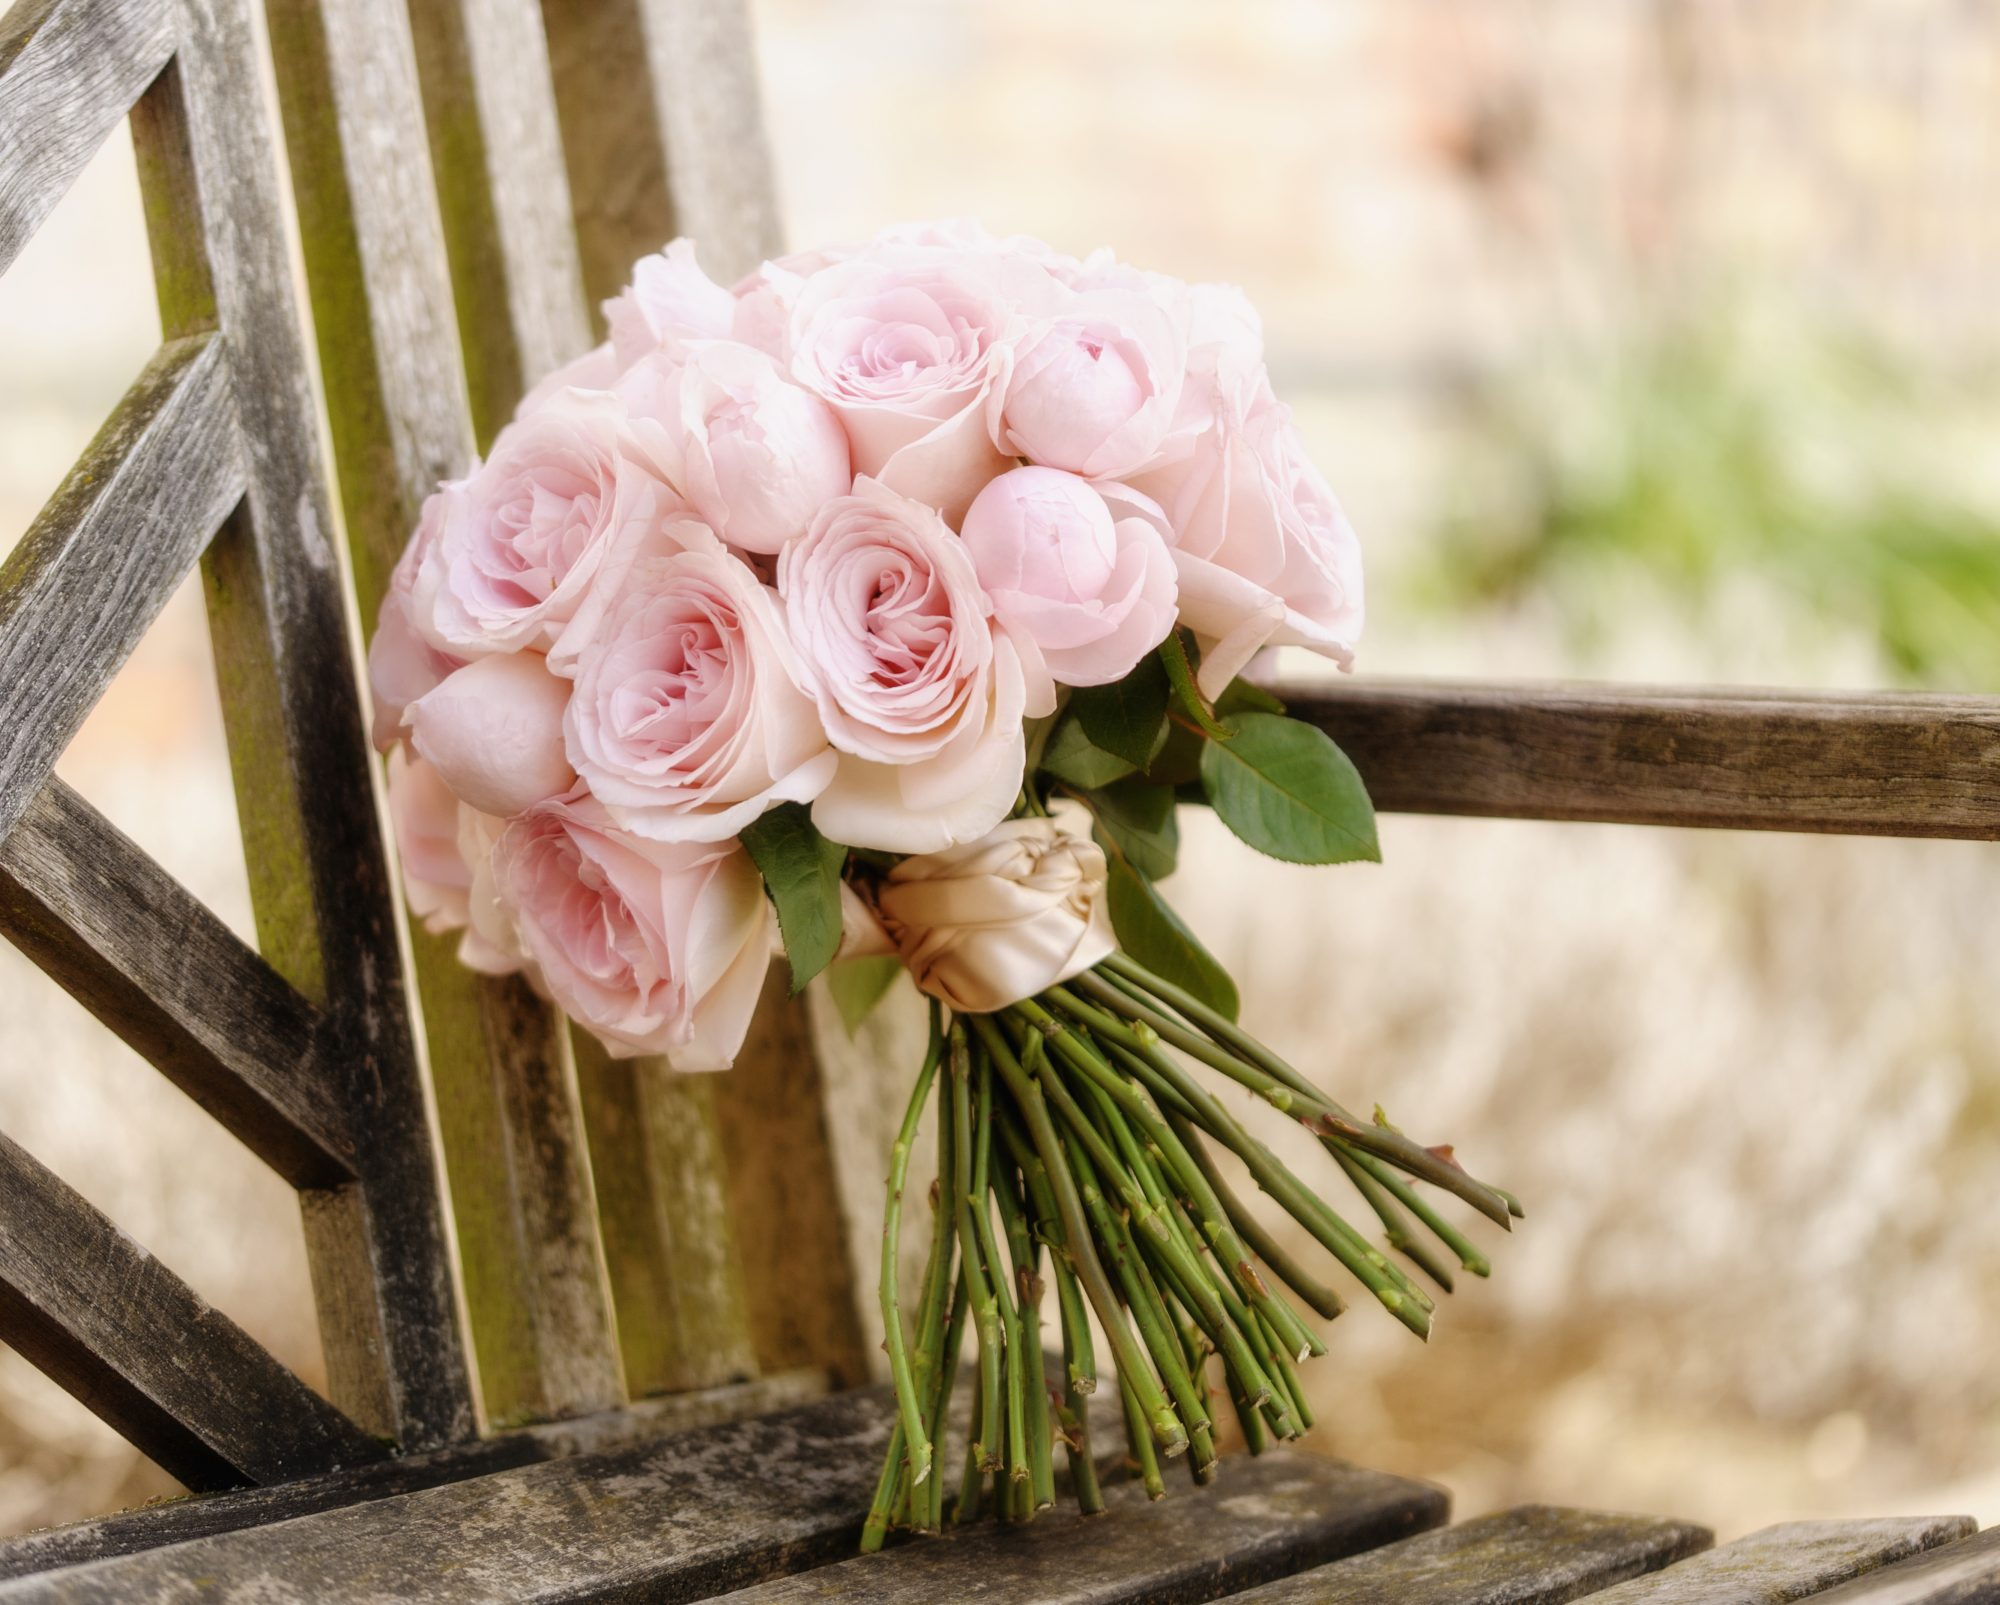 Close up of bouquet of roses on wooden bench